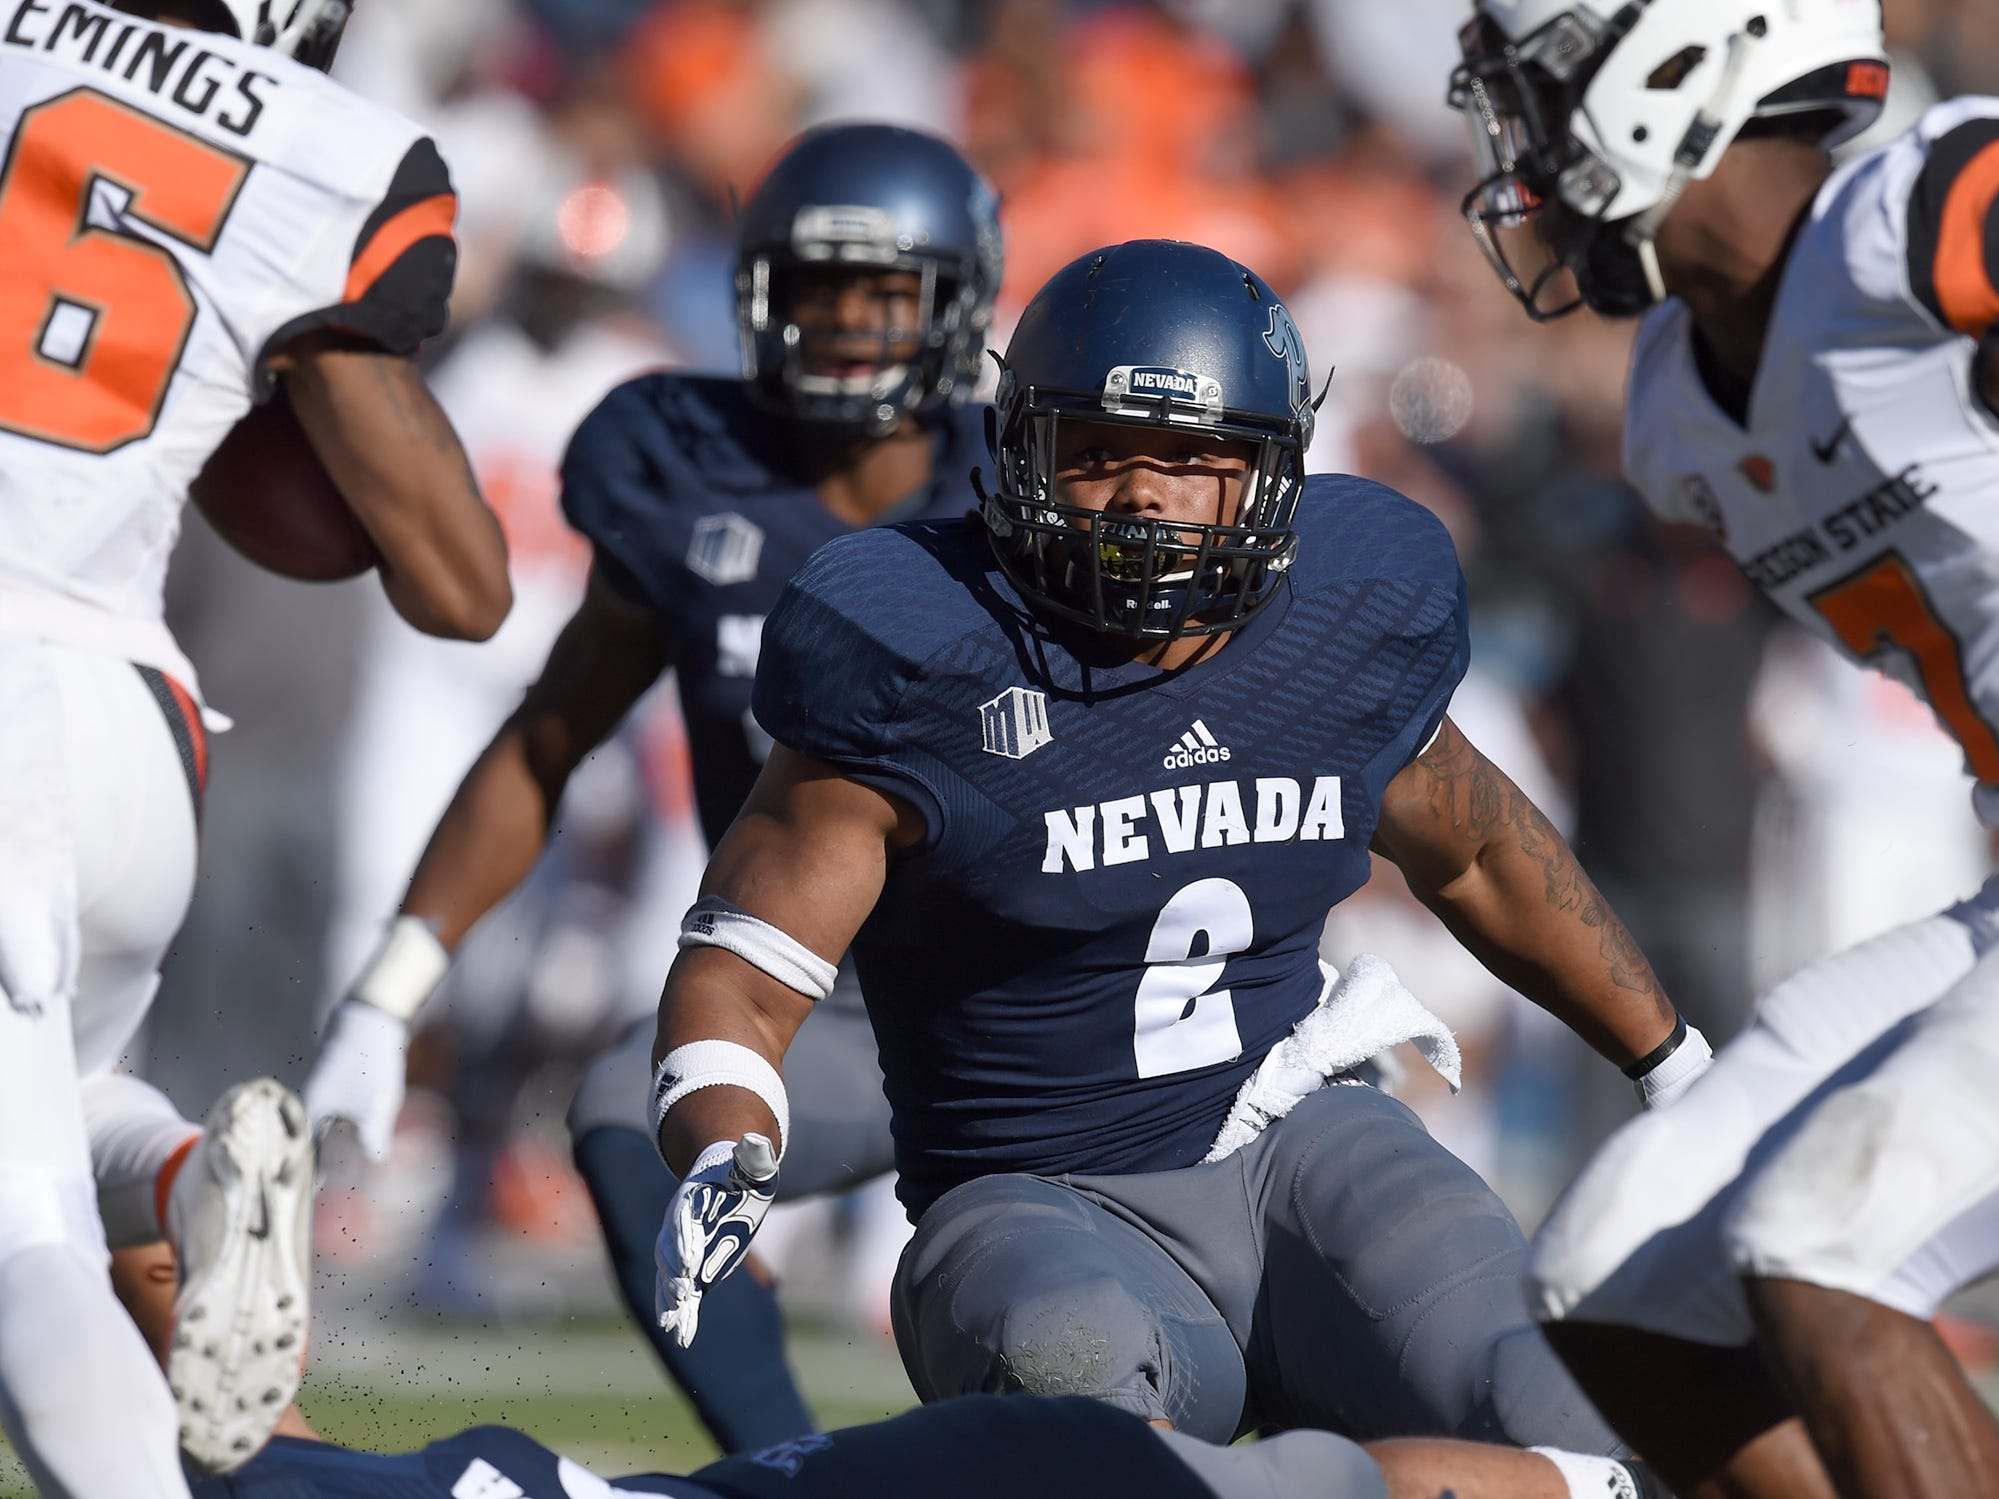 DB Asauni Rufus looks to make a tackle on Oregon State's Champ Flemings at Mackay Stadium on Sept. 15, 2018.